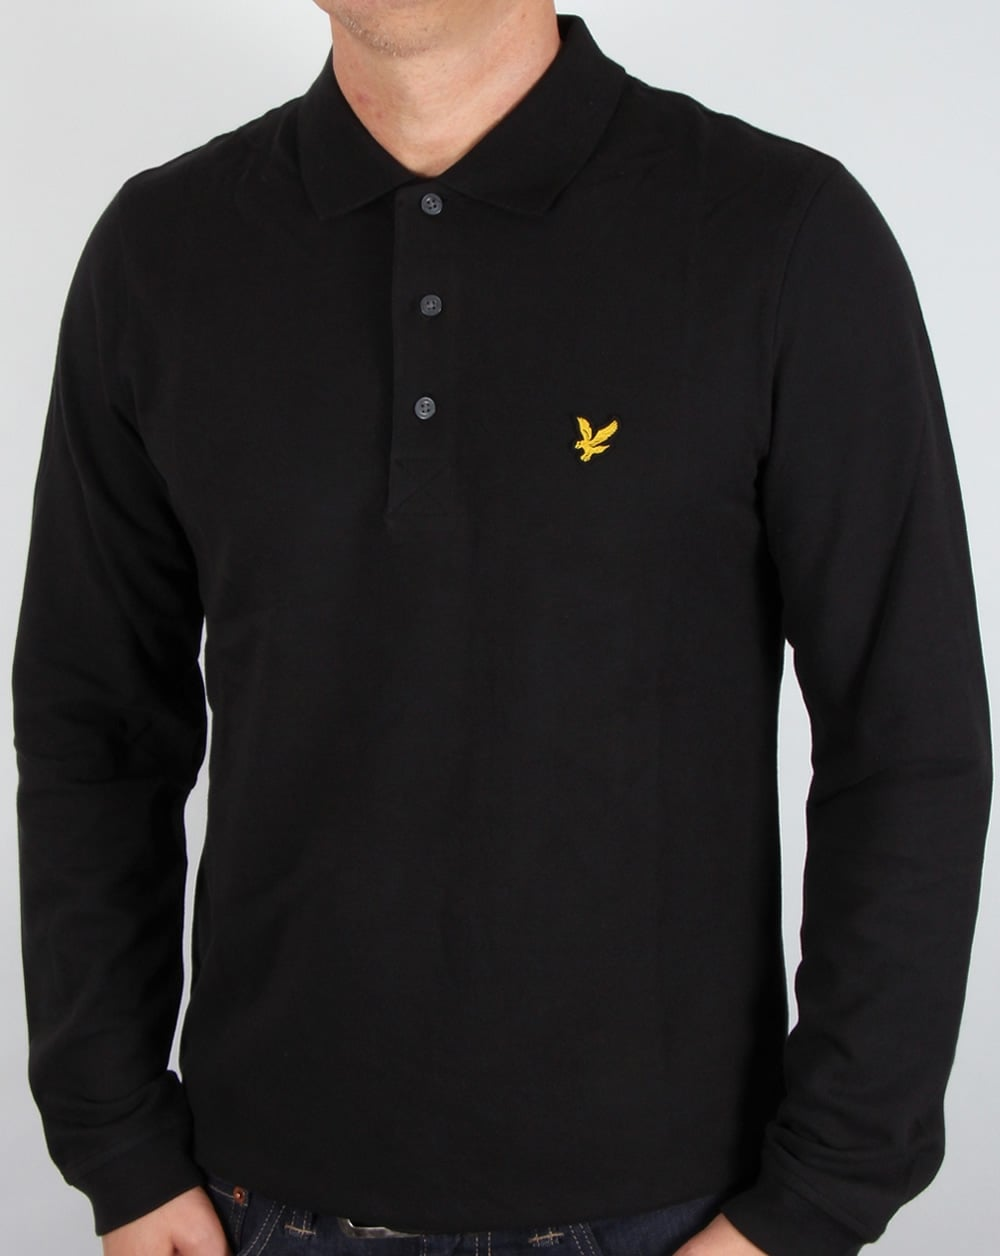 lyle and scott long sleeve polo shirt black lyle scott polo shirt. Black Bedroom Furniture Sets. Home Design Ideas